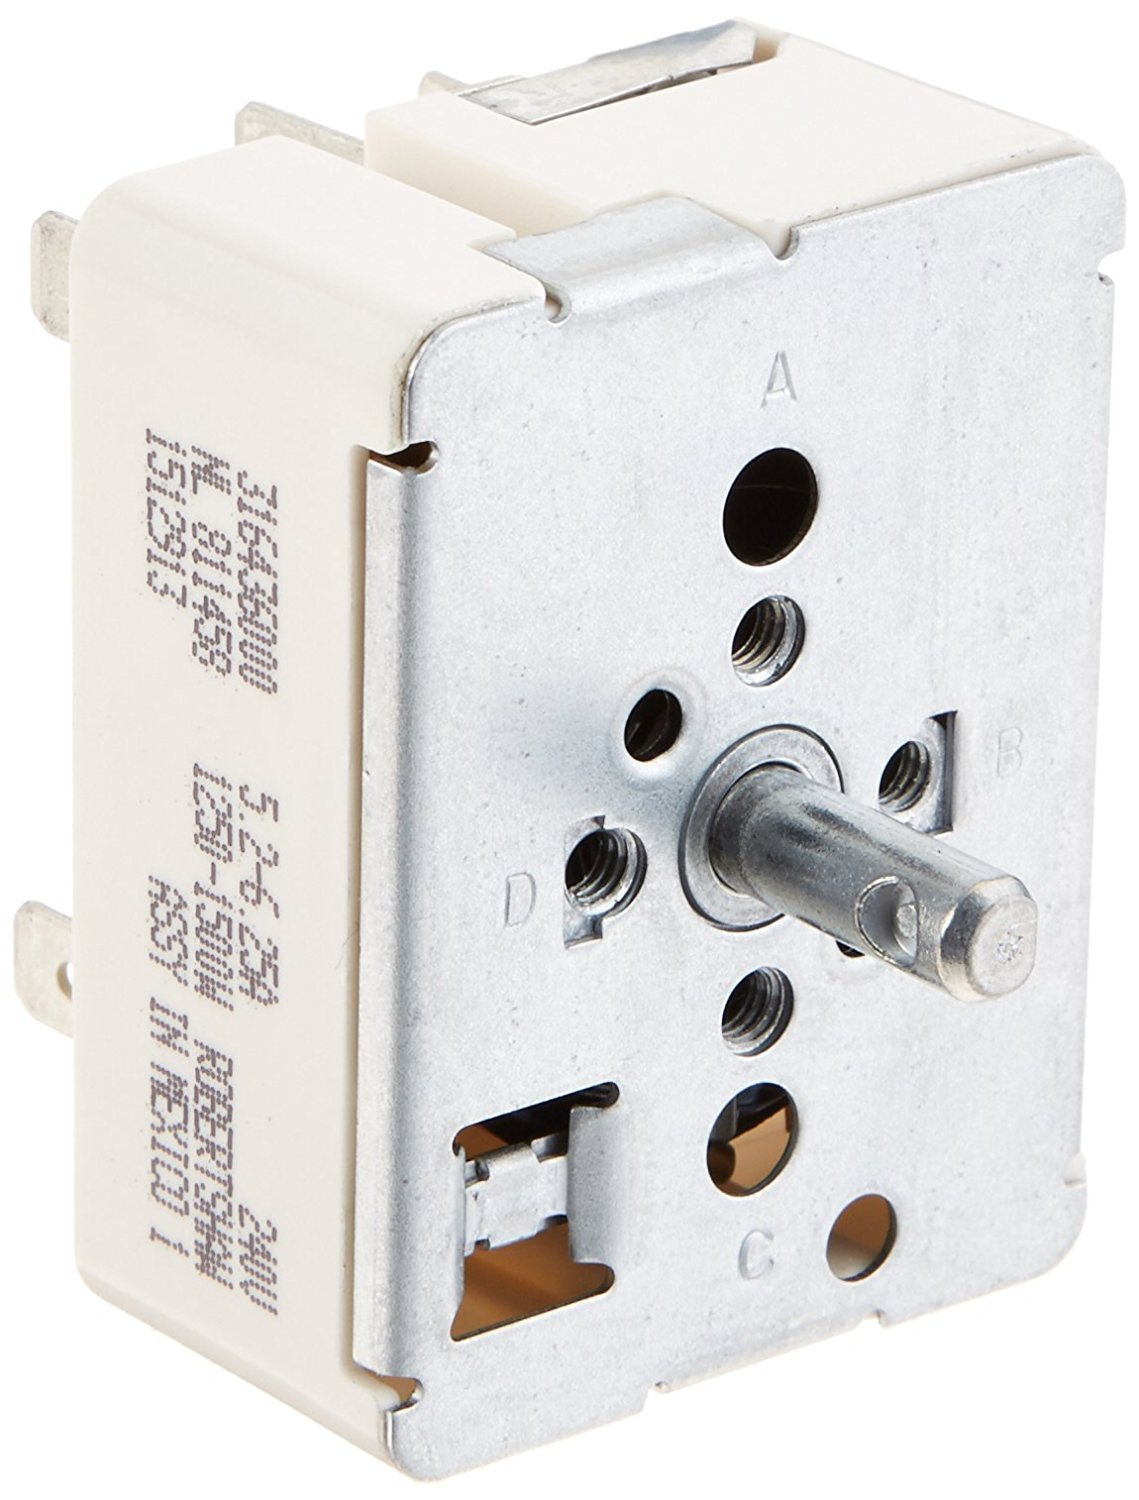 Kenmore / Sears 7909422240B Burner Switch Replacement